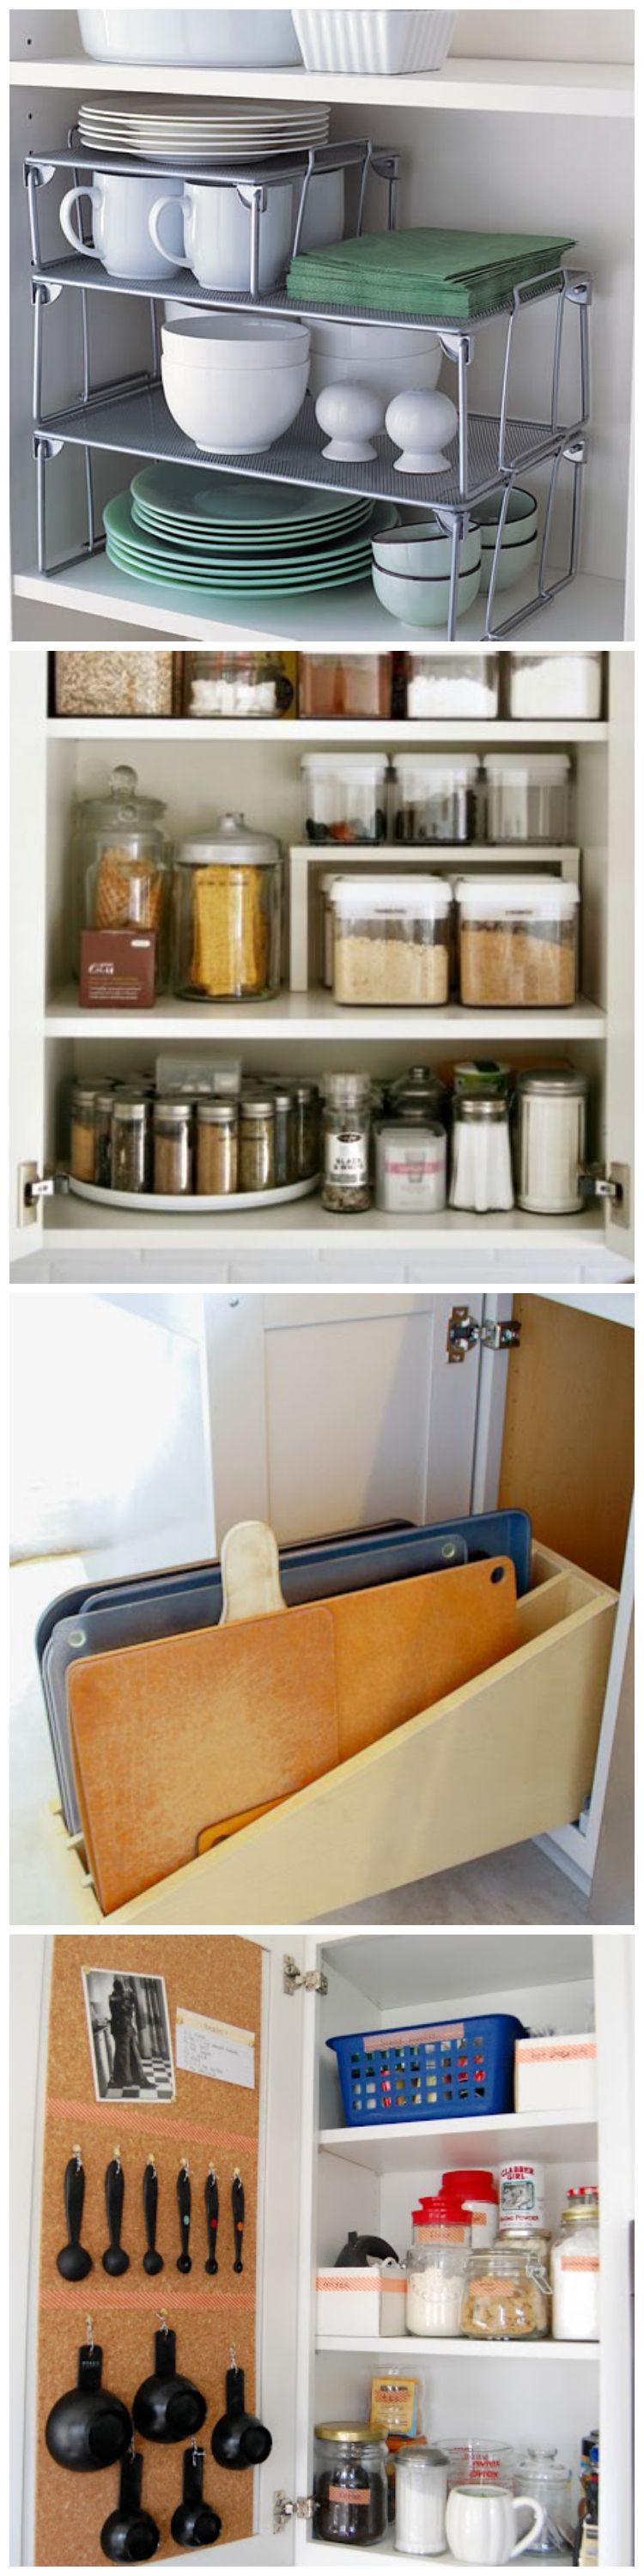 These Insanely Organized Cabinets Will Inspire You To Tidy Up Kitchen Hacks Organization Kitchen Cabinet Organization Home Organization